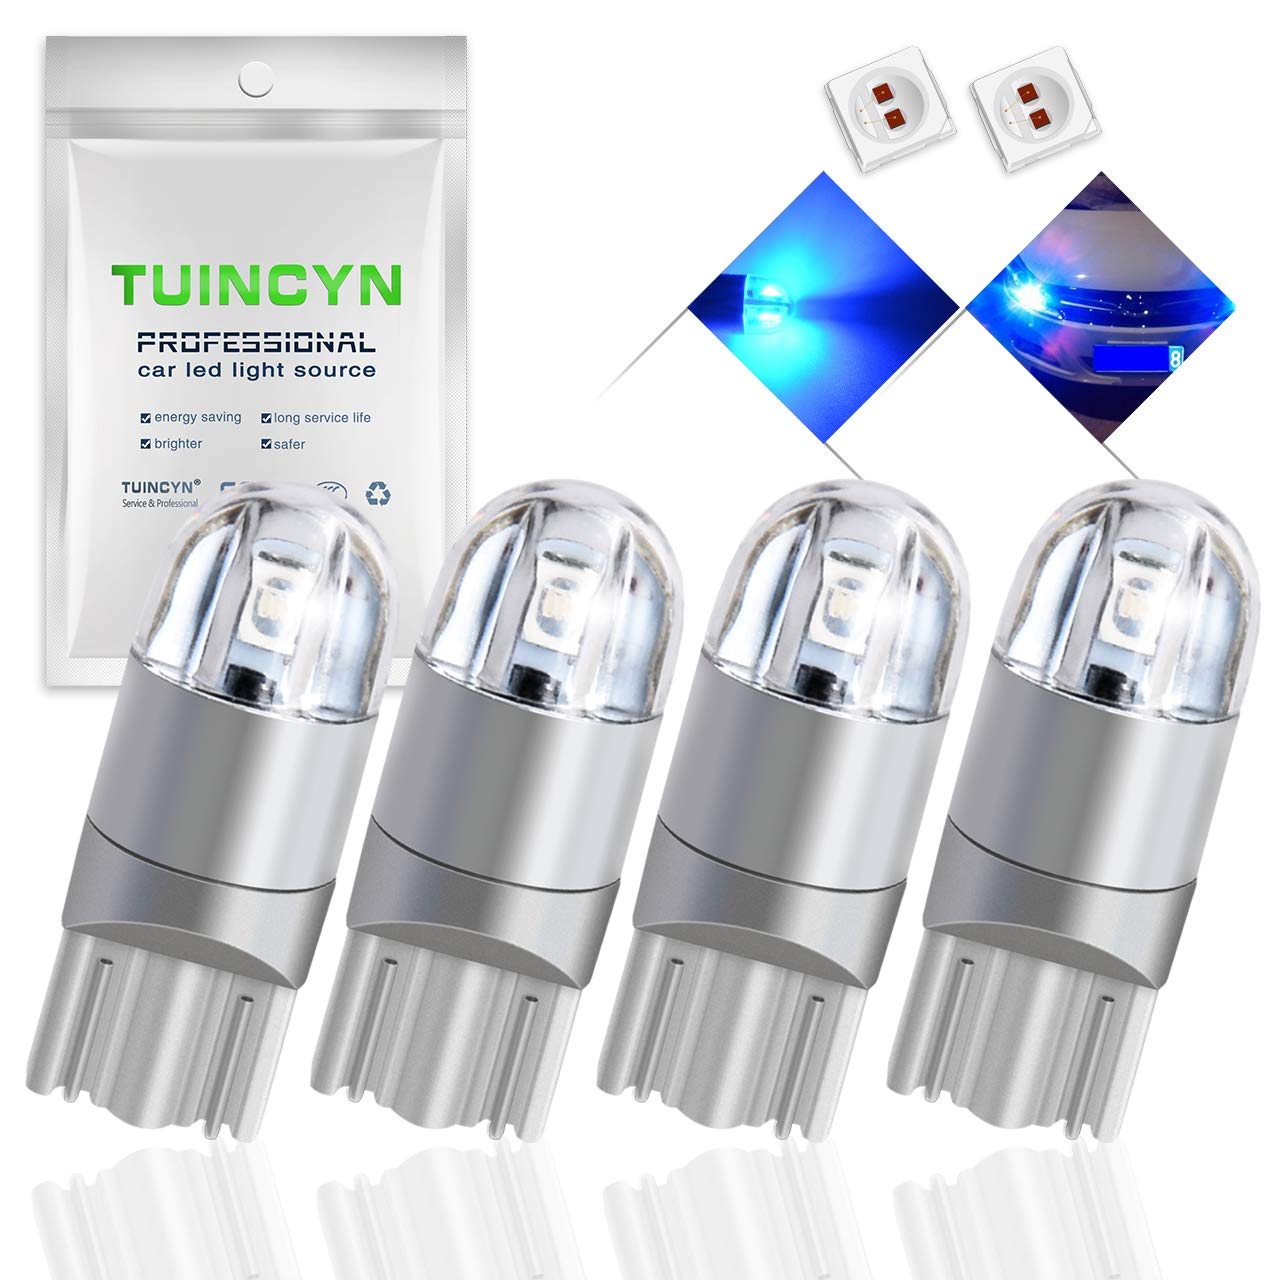 10pcs TUINCYN T10 194 168 LED Bulb Ice Blue Super Bright 2825 W5W 175 158 Socket 2SMD 3030 Chipsets Car Interior Light Map Dome Lamp Courtesy Trunk License Plate Dashboard Parking Light 12V-24V